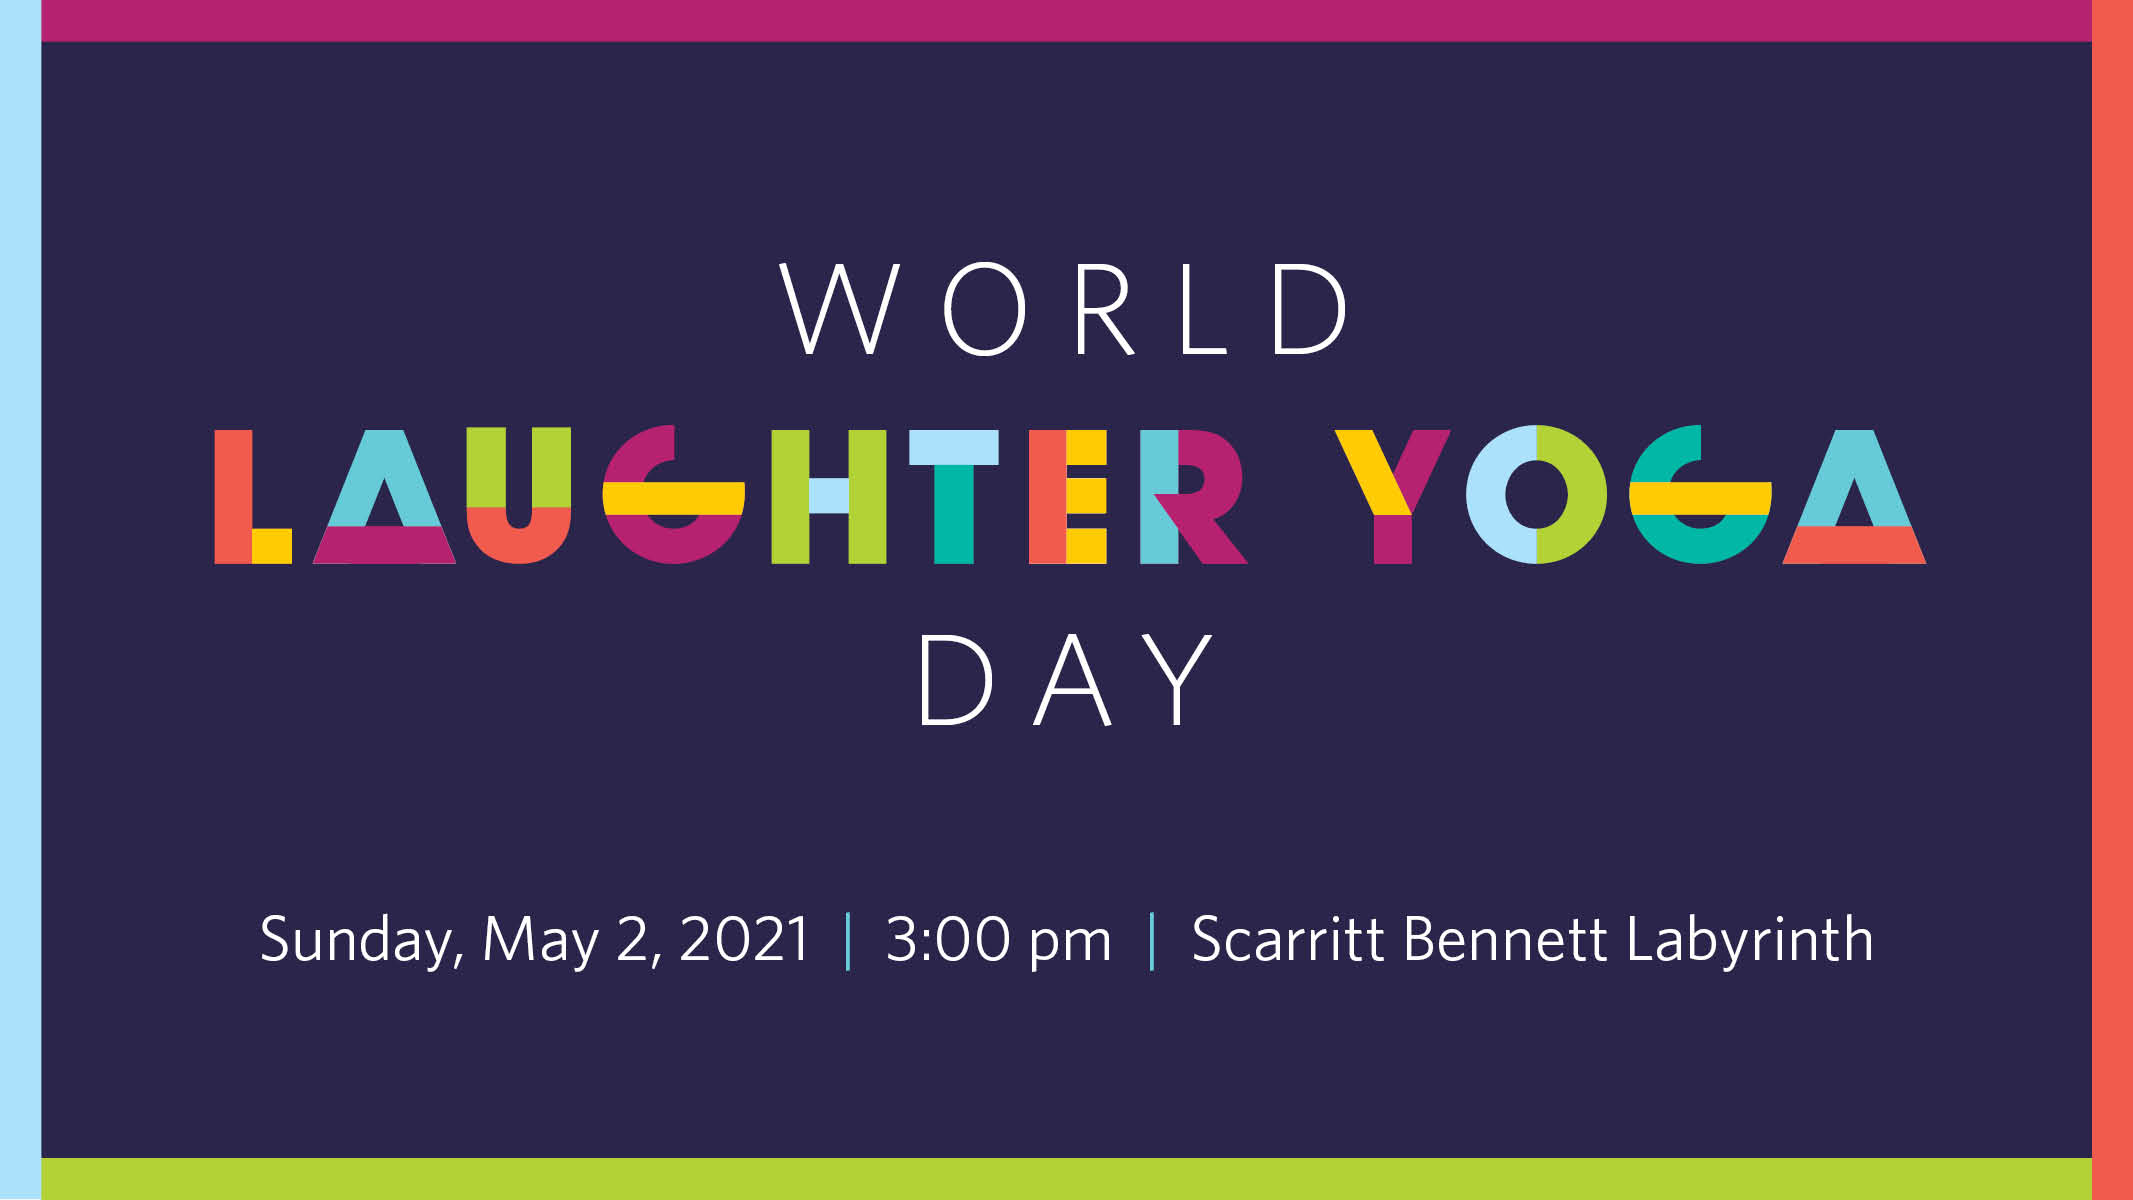 World Laughter Yoga Day: 3pm, Sunday, May 2, at the Scarritt Bennett Center Labyrinth